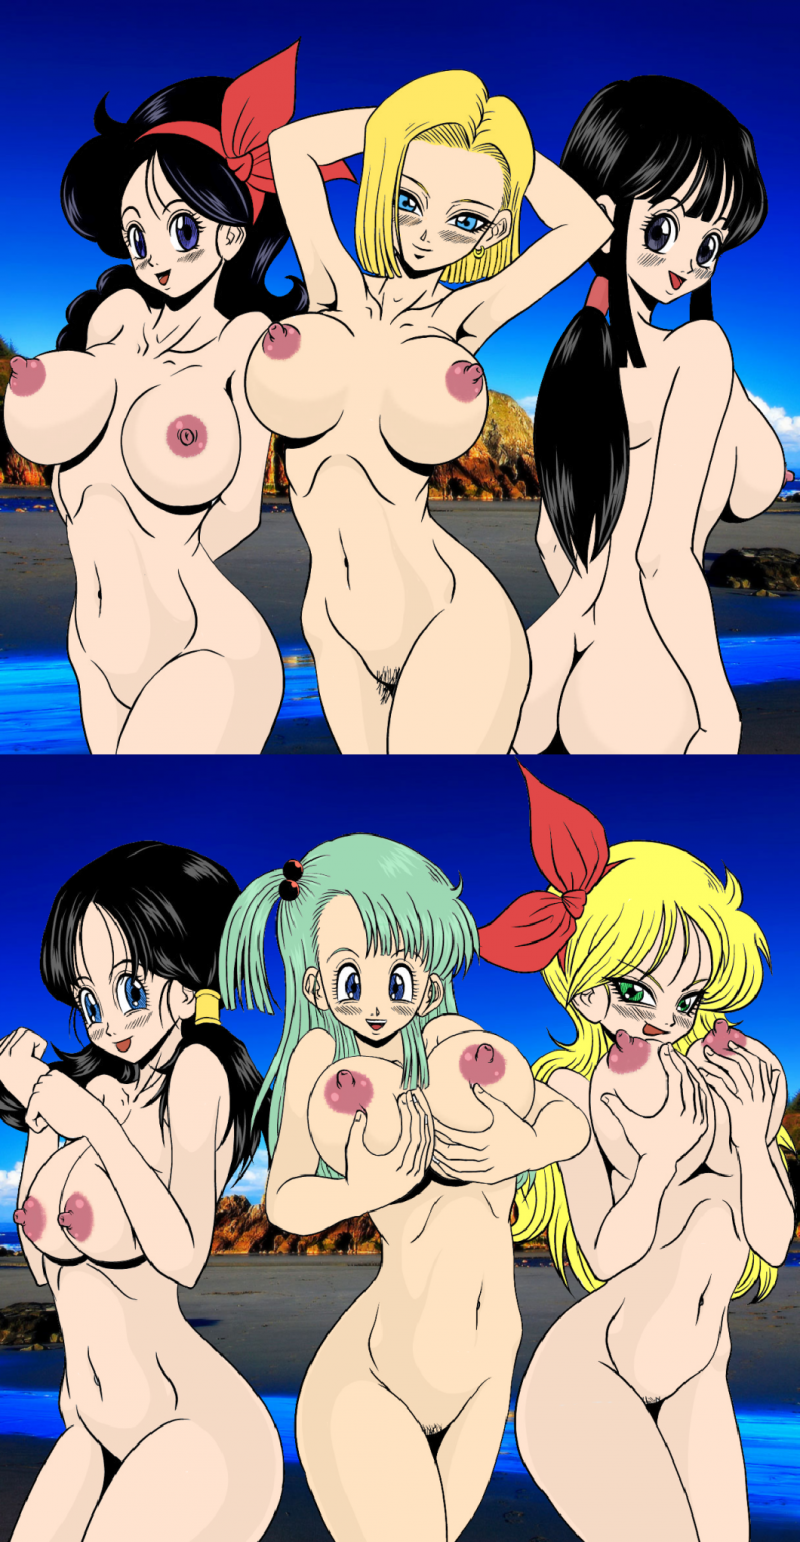 1427709 - Android_18 Bulma_Briefs Chichi Dragon_Ball_Z Launch Videl pyramid_house.png